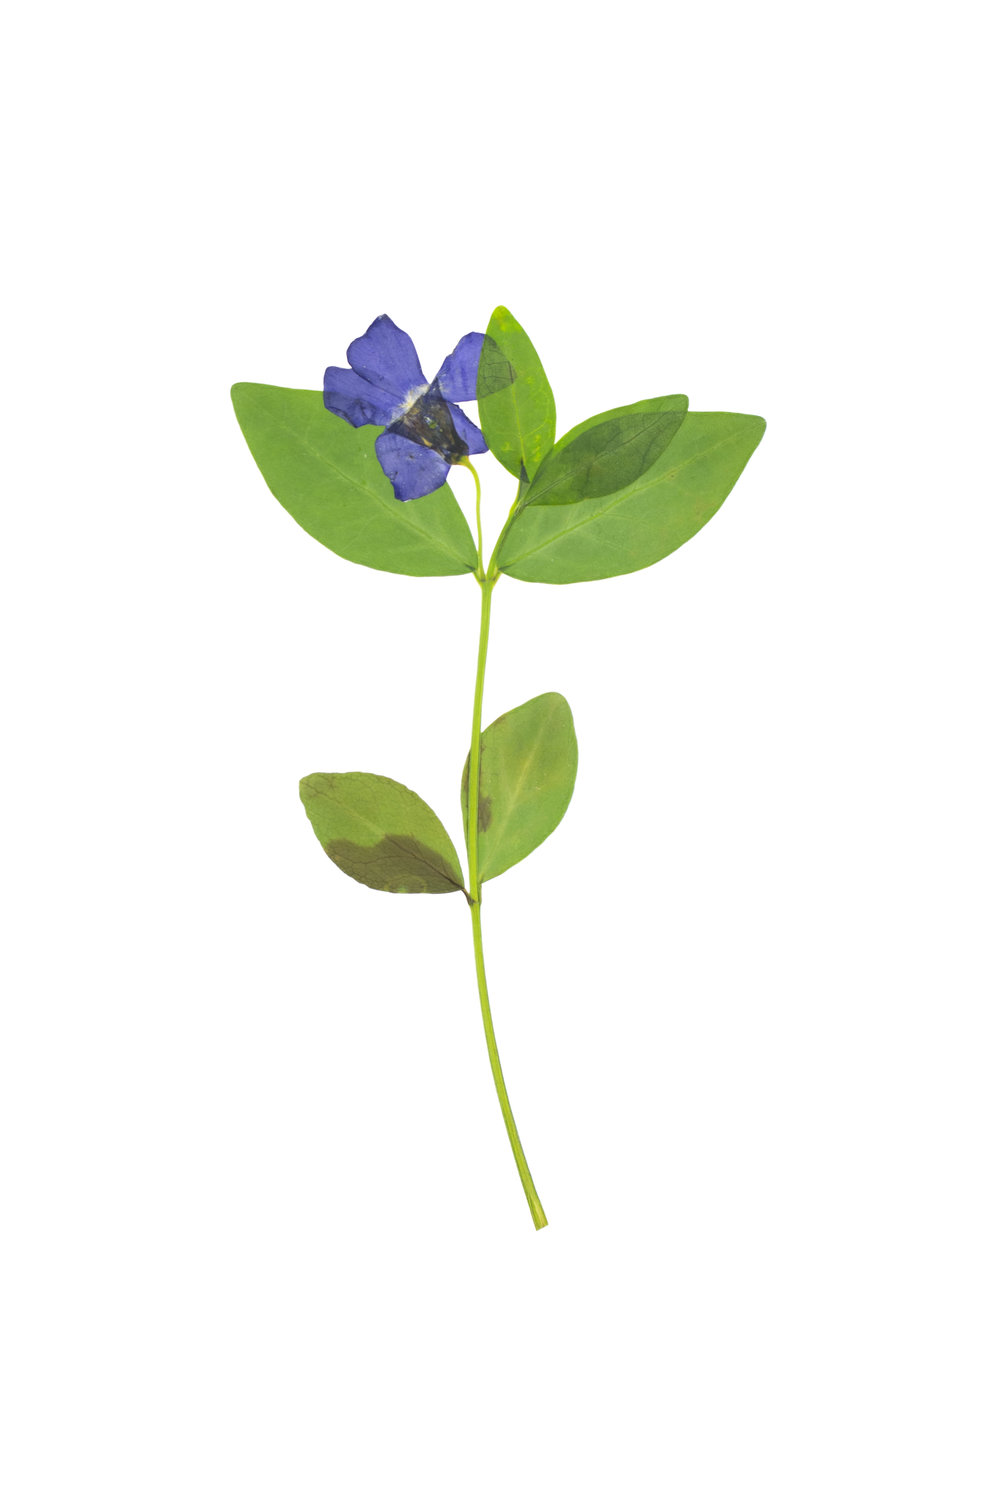 New! Periwinkle / Vinca minor